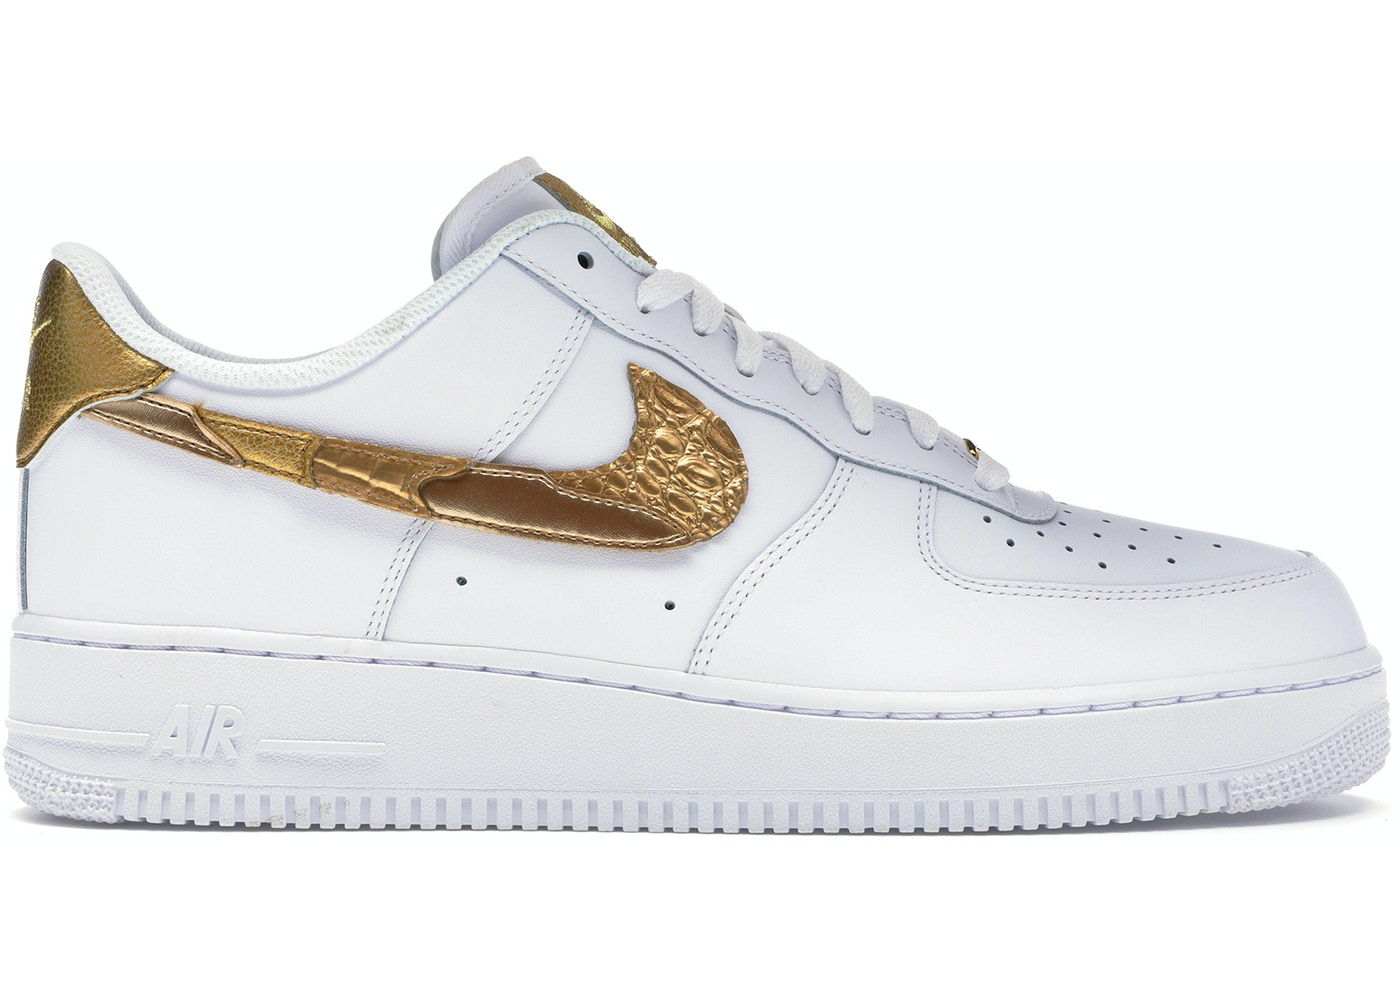 Air Force 1 Low CR7 Golden Patchwork - AQ0666-100 a008988b0